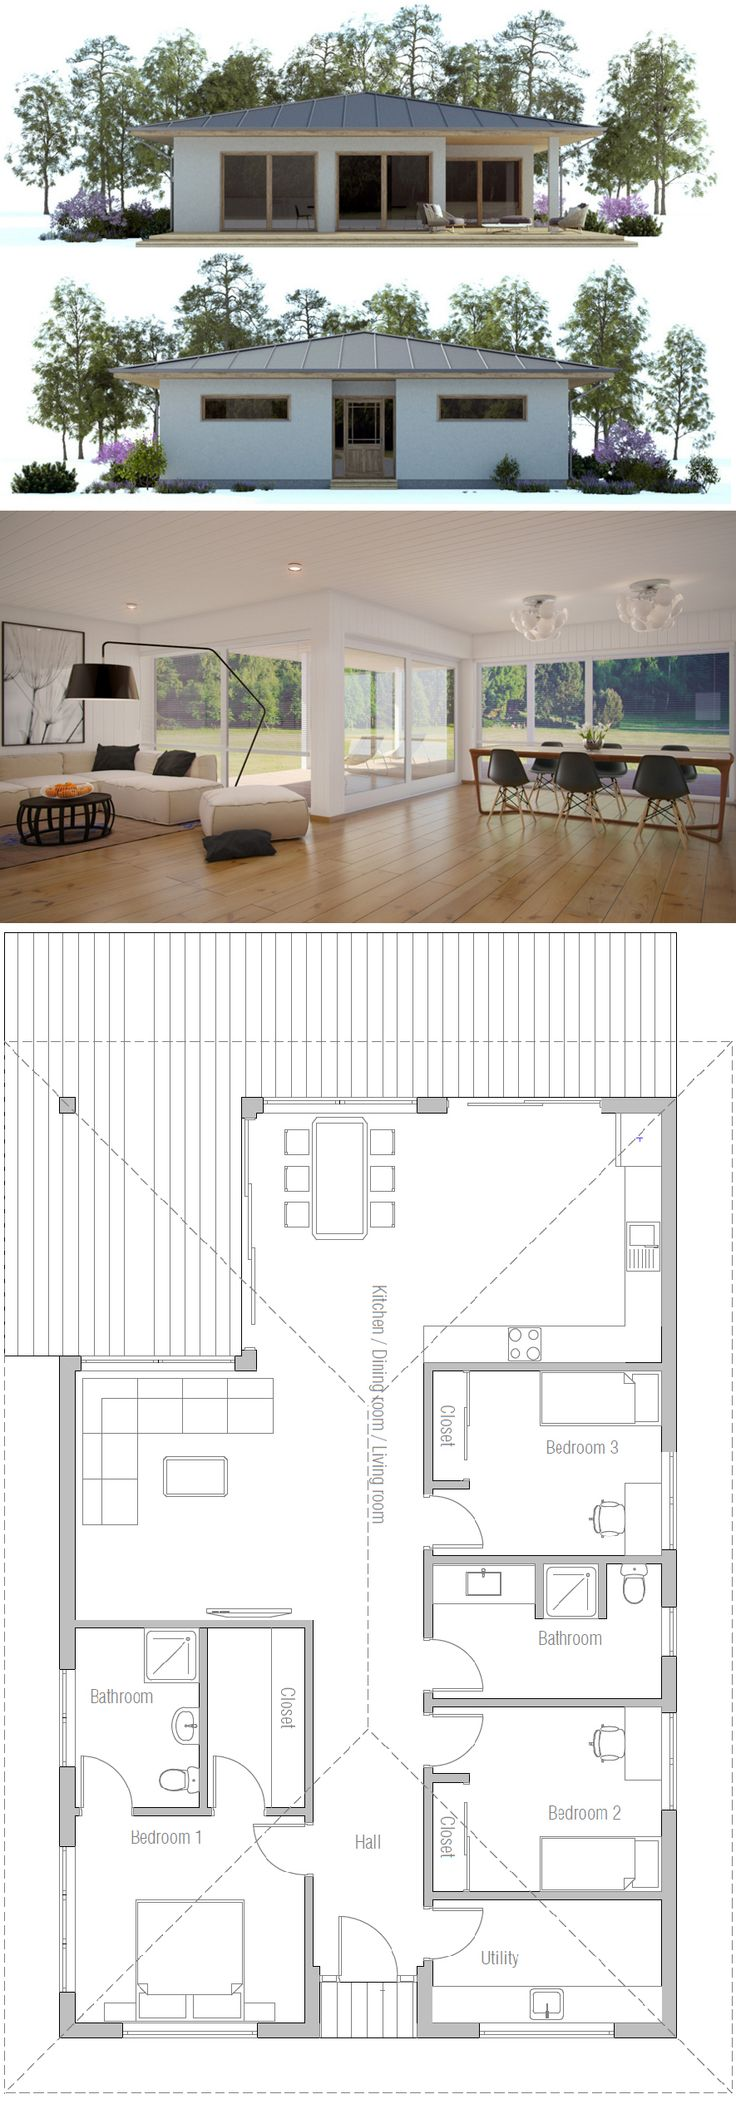 Architectural home plans      home hall design plans   Victorian home plans Architectural home plans      home hall design plans